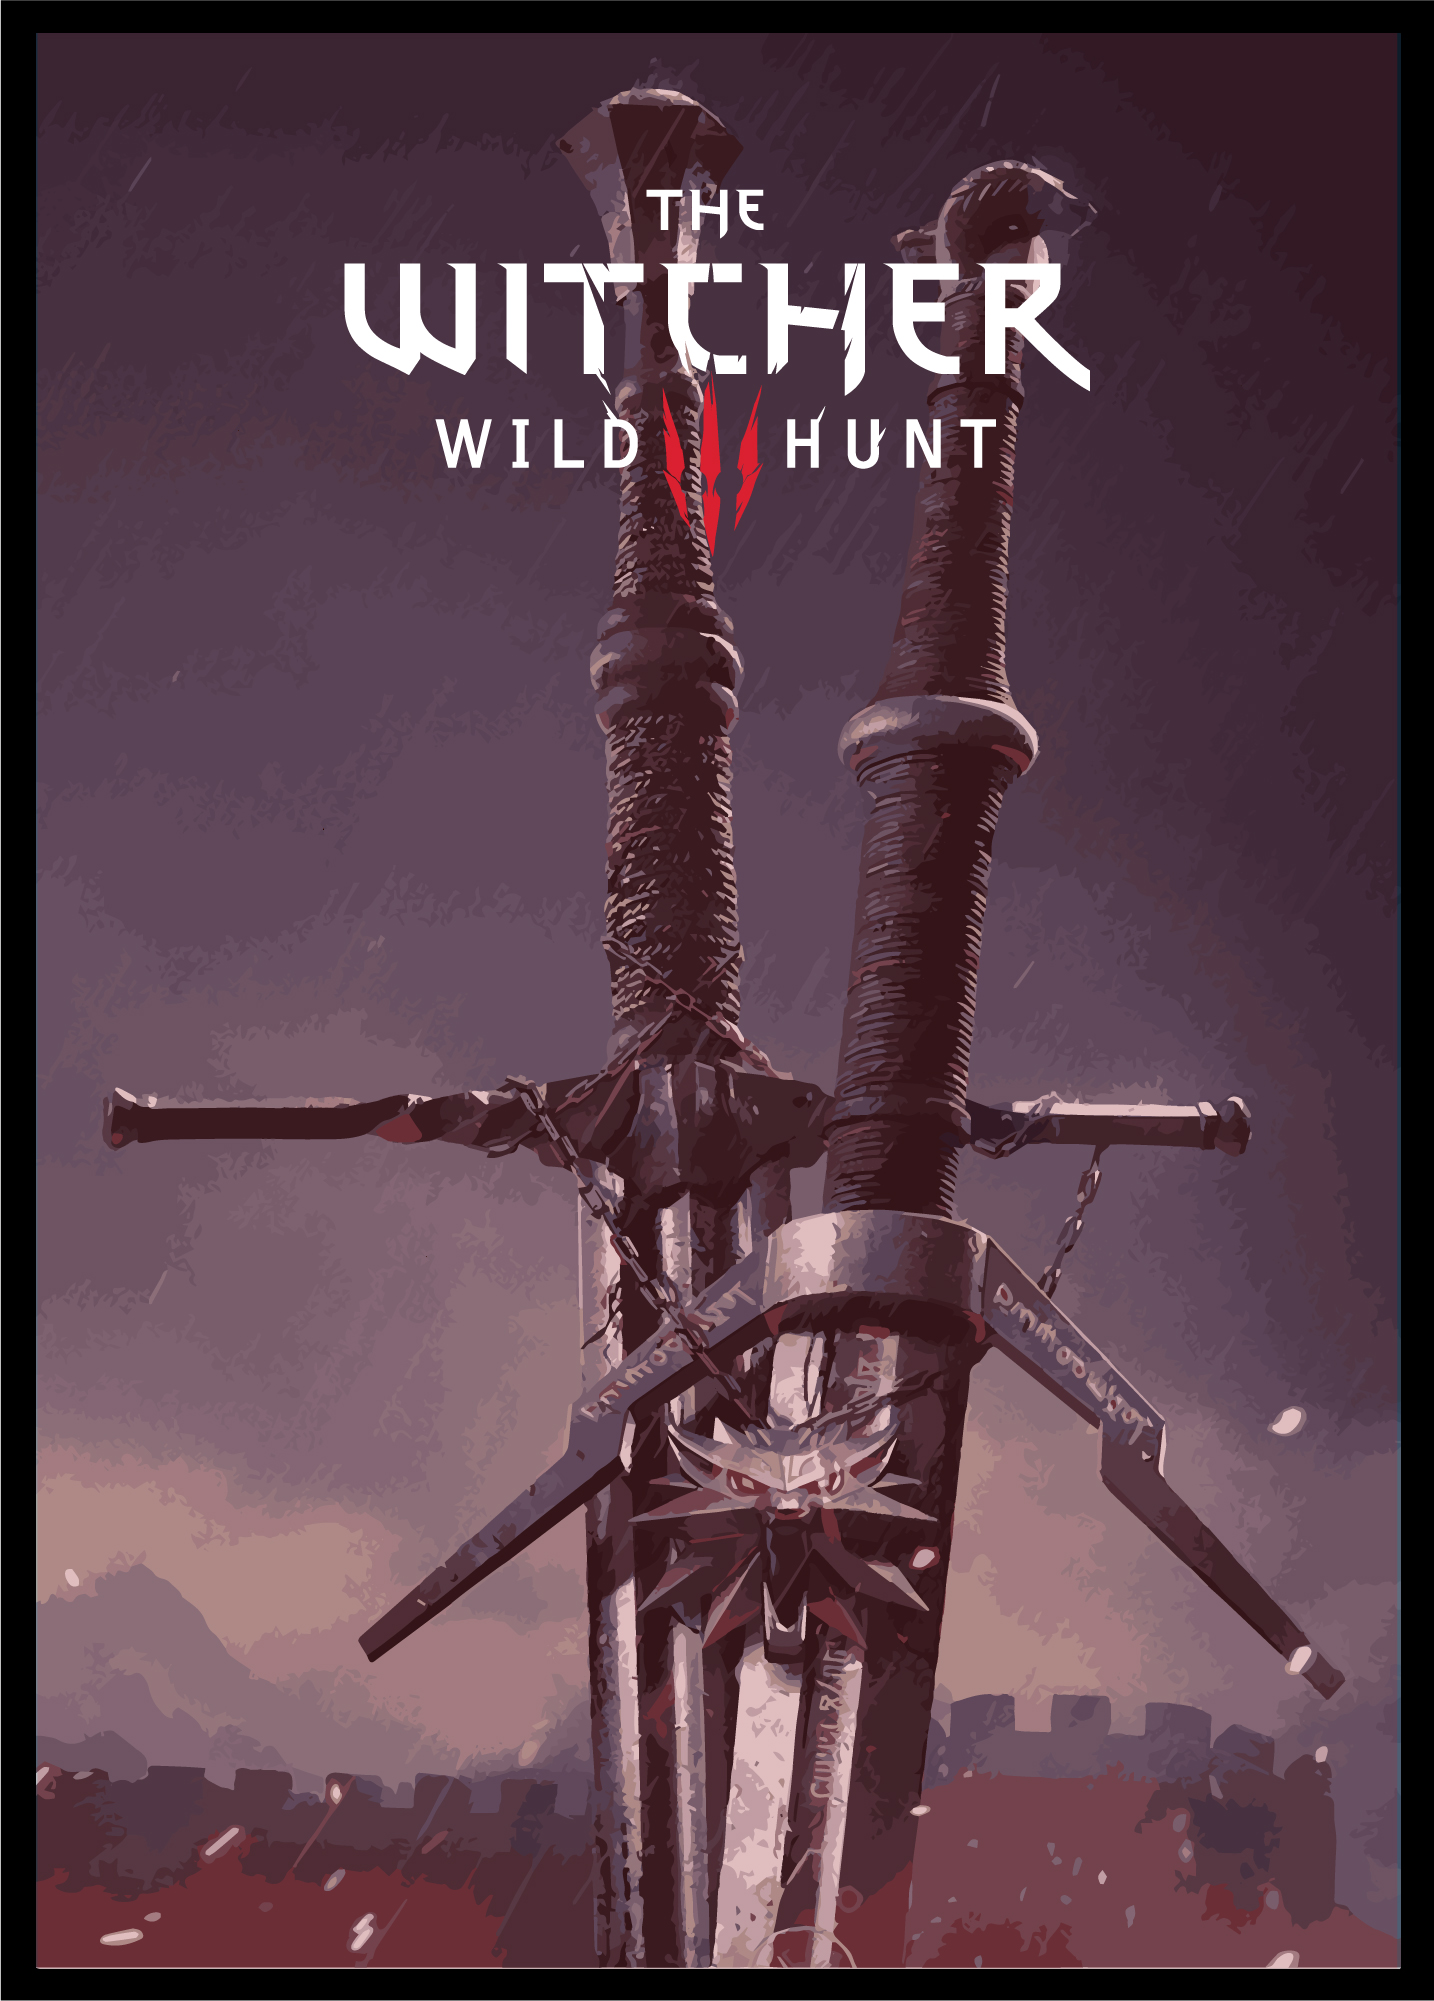 the witcher 3 wild hunt poster by utba